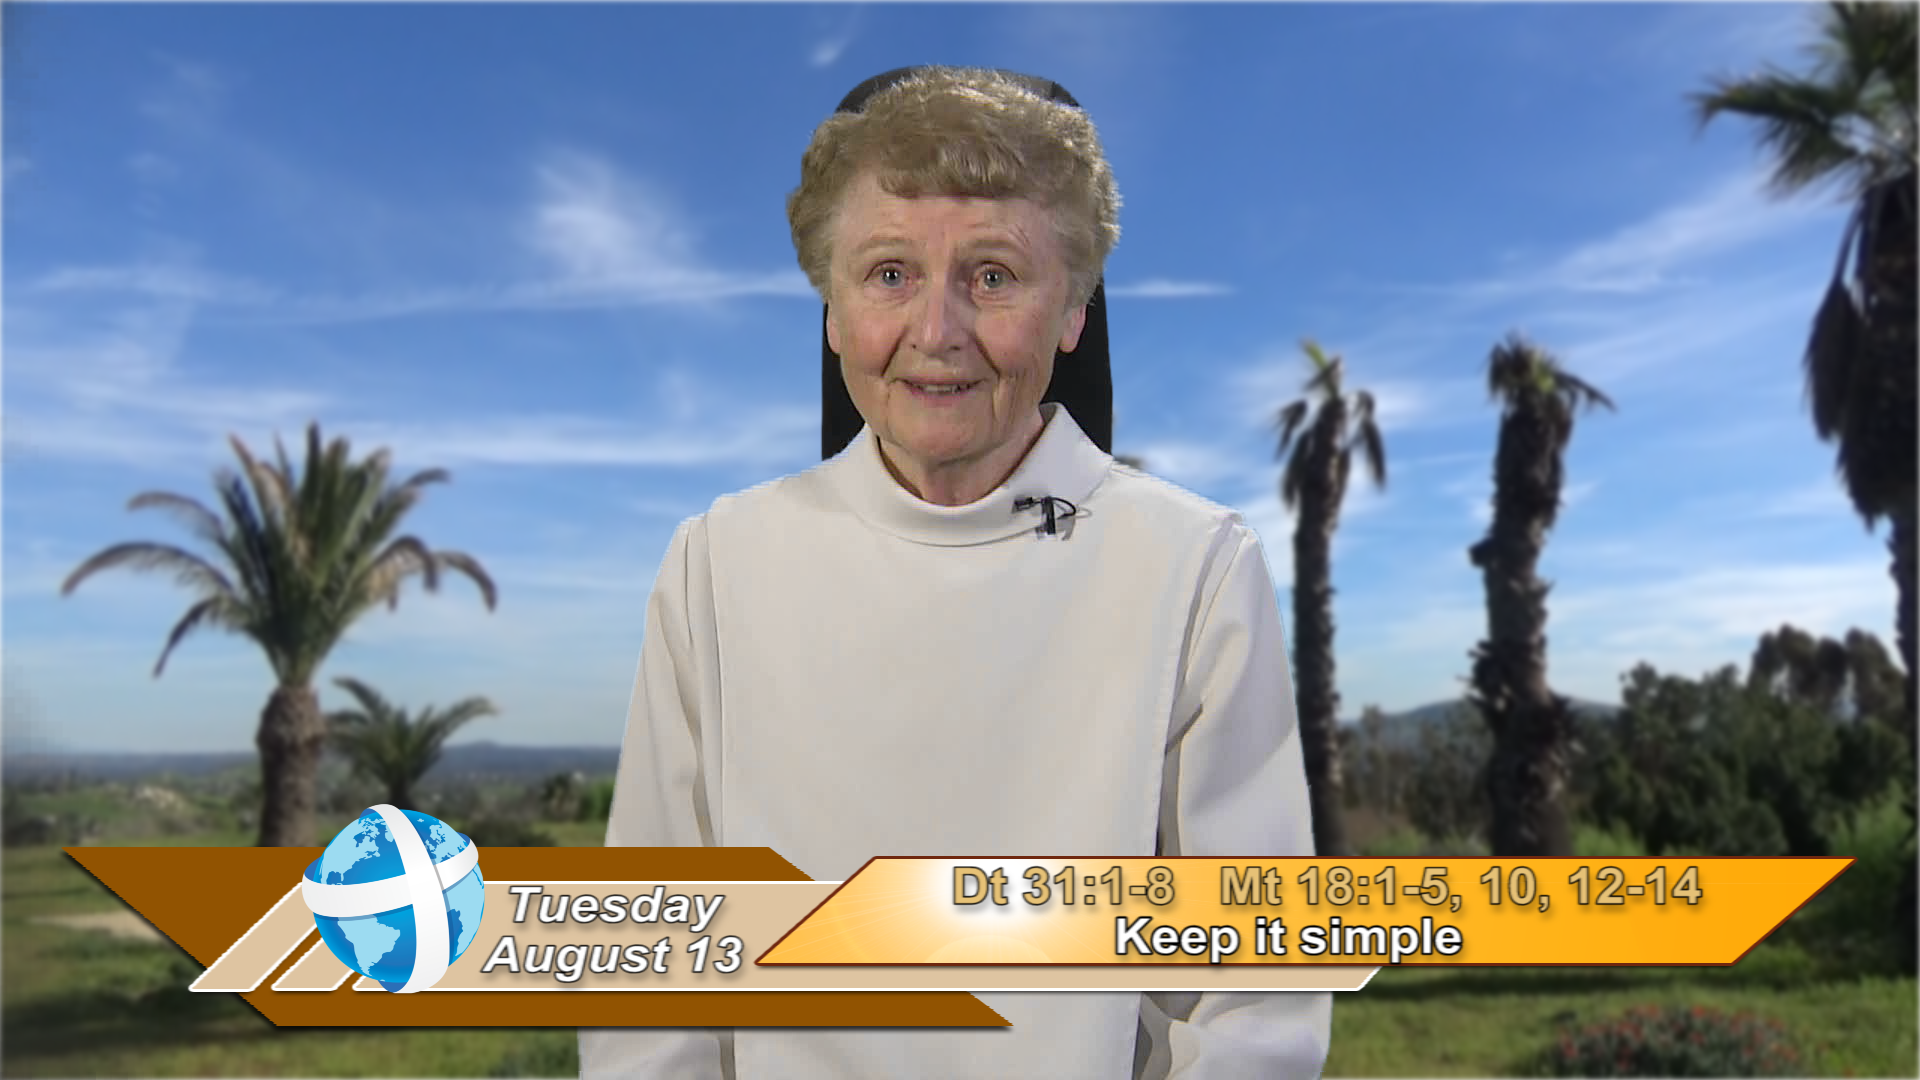 Artwork for iGod Today with Sr. Jeanne Harris, OP; Today's topic: Keep it simple